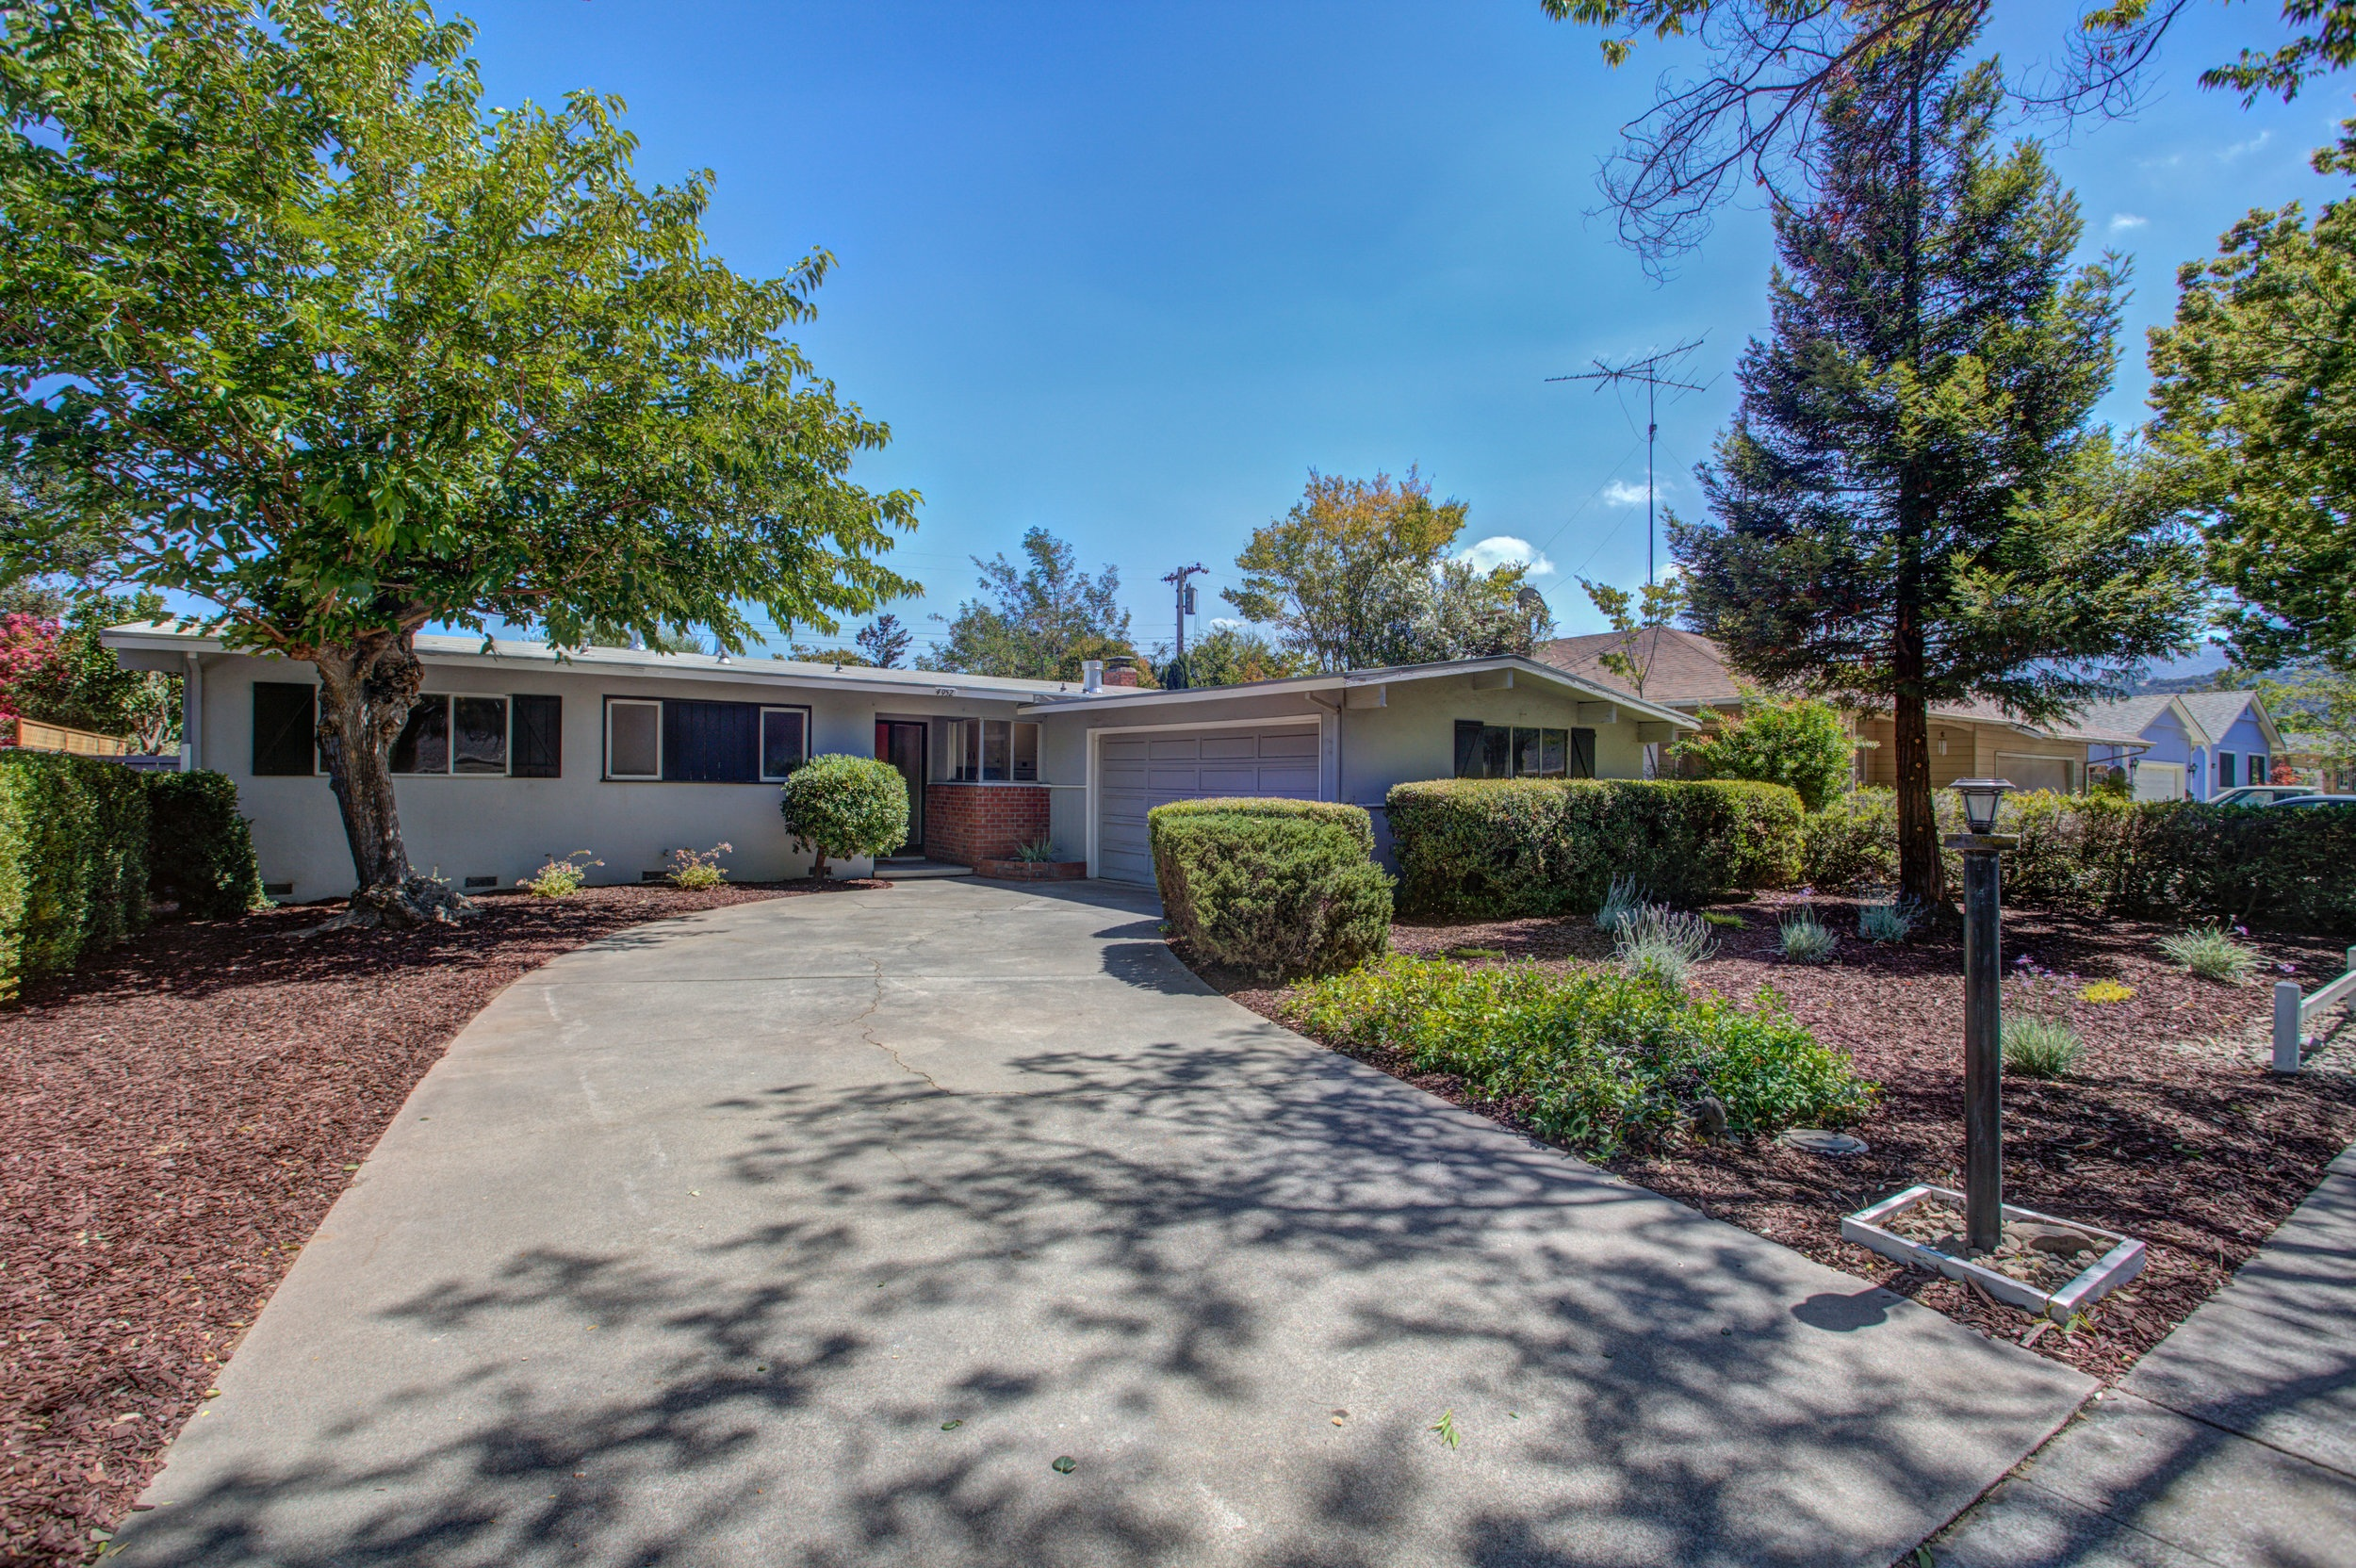 4952 Bel Canto